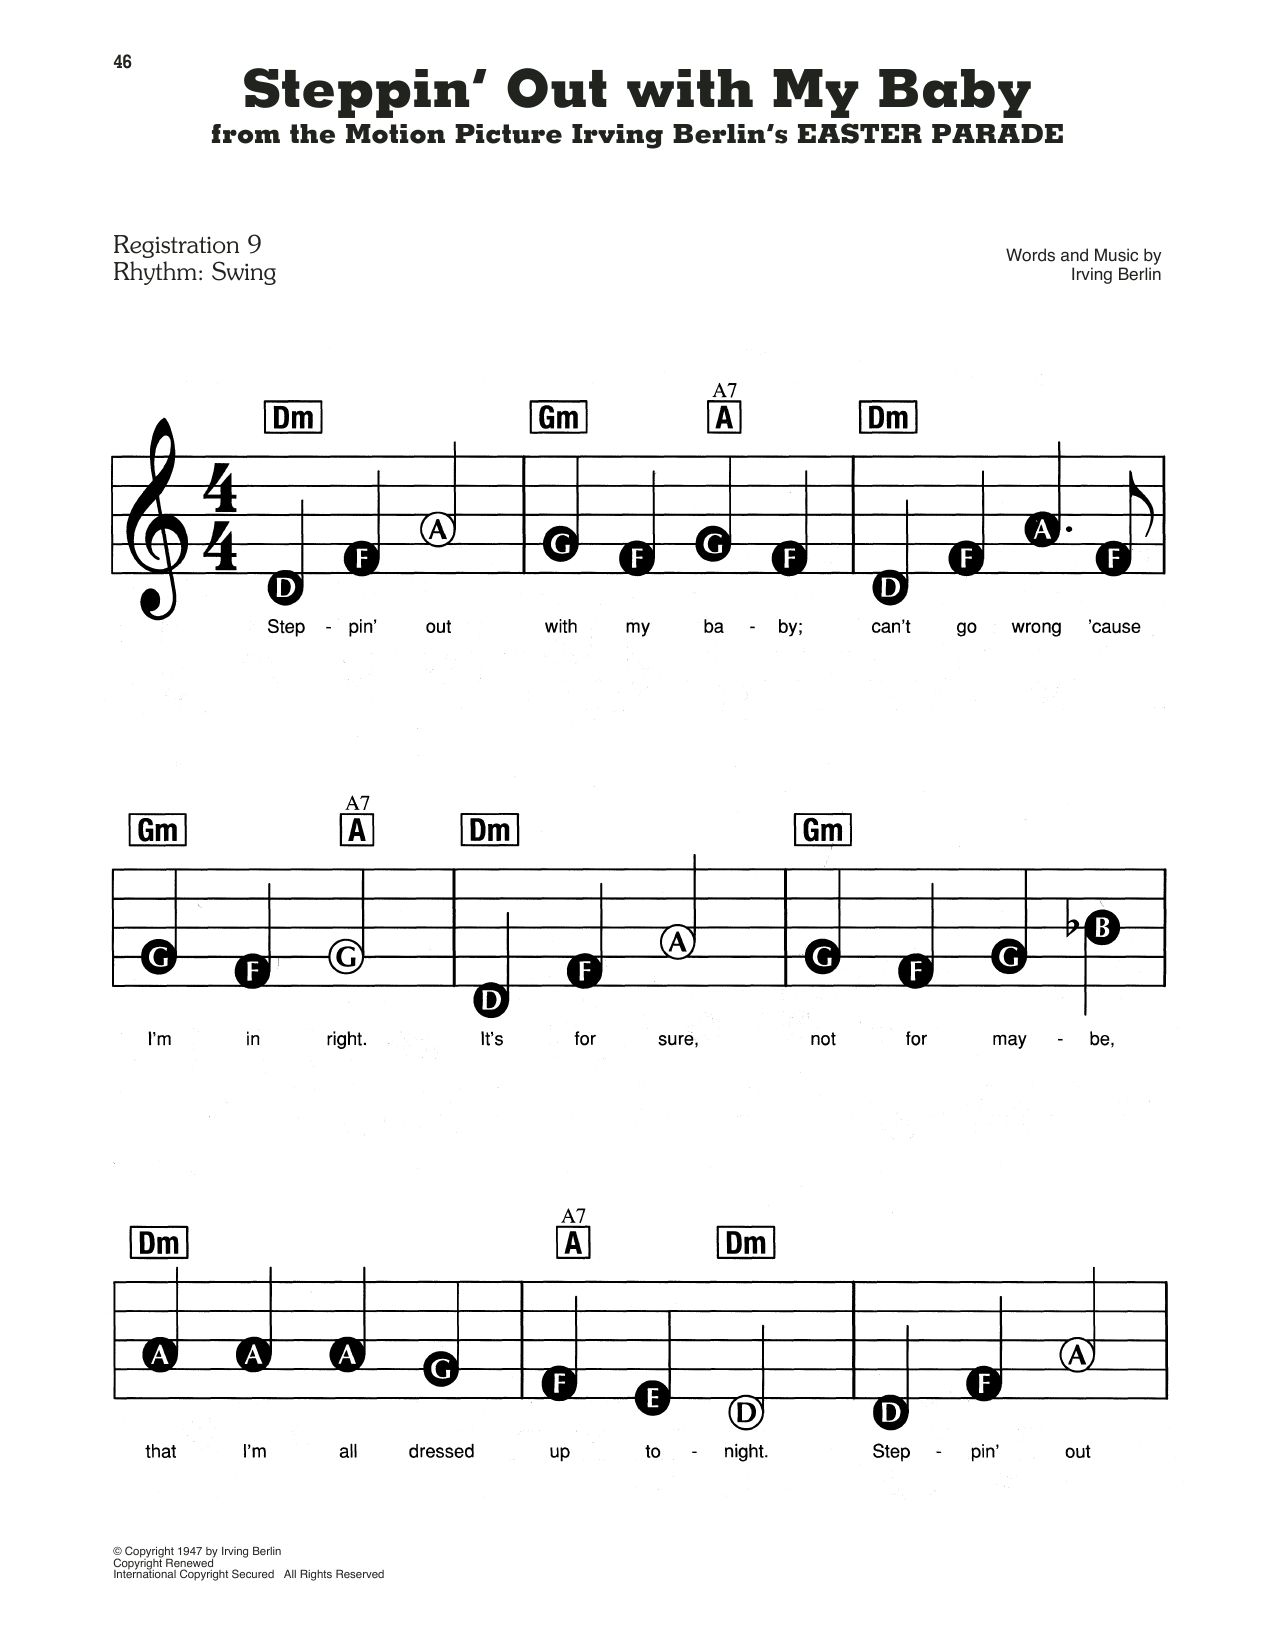 Tony Bennett Steppin' Out With My Baby (from Easter Parade) sheet music notes and chords. Download Printable PDF.